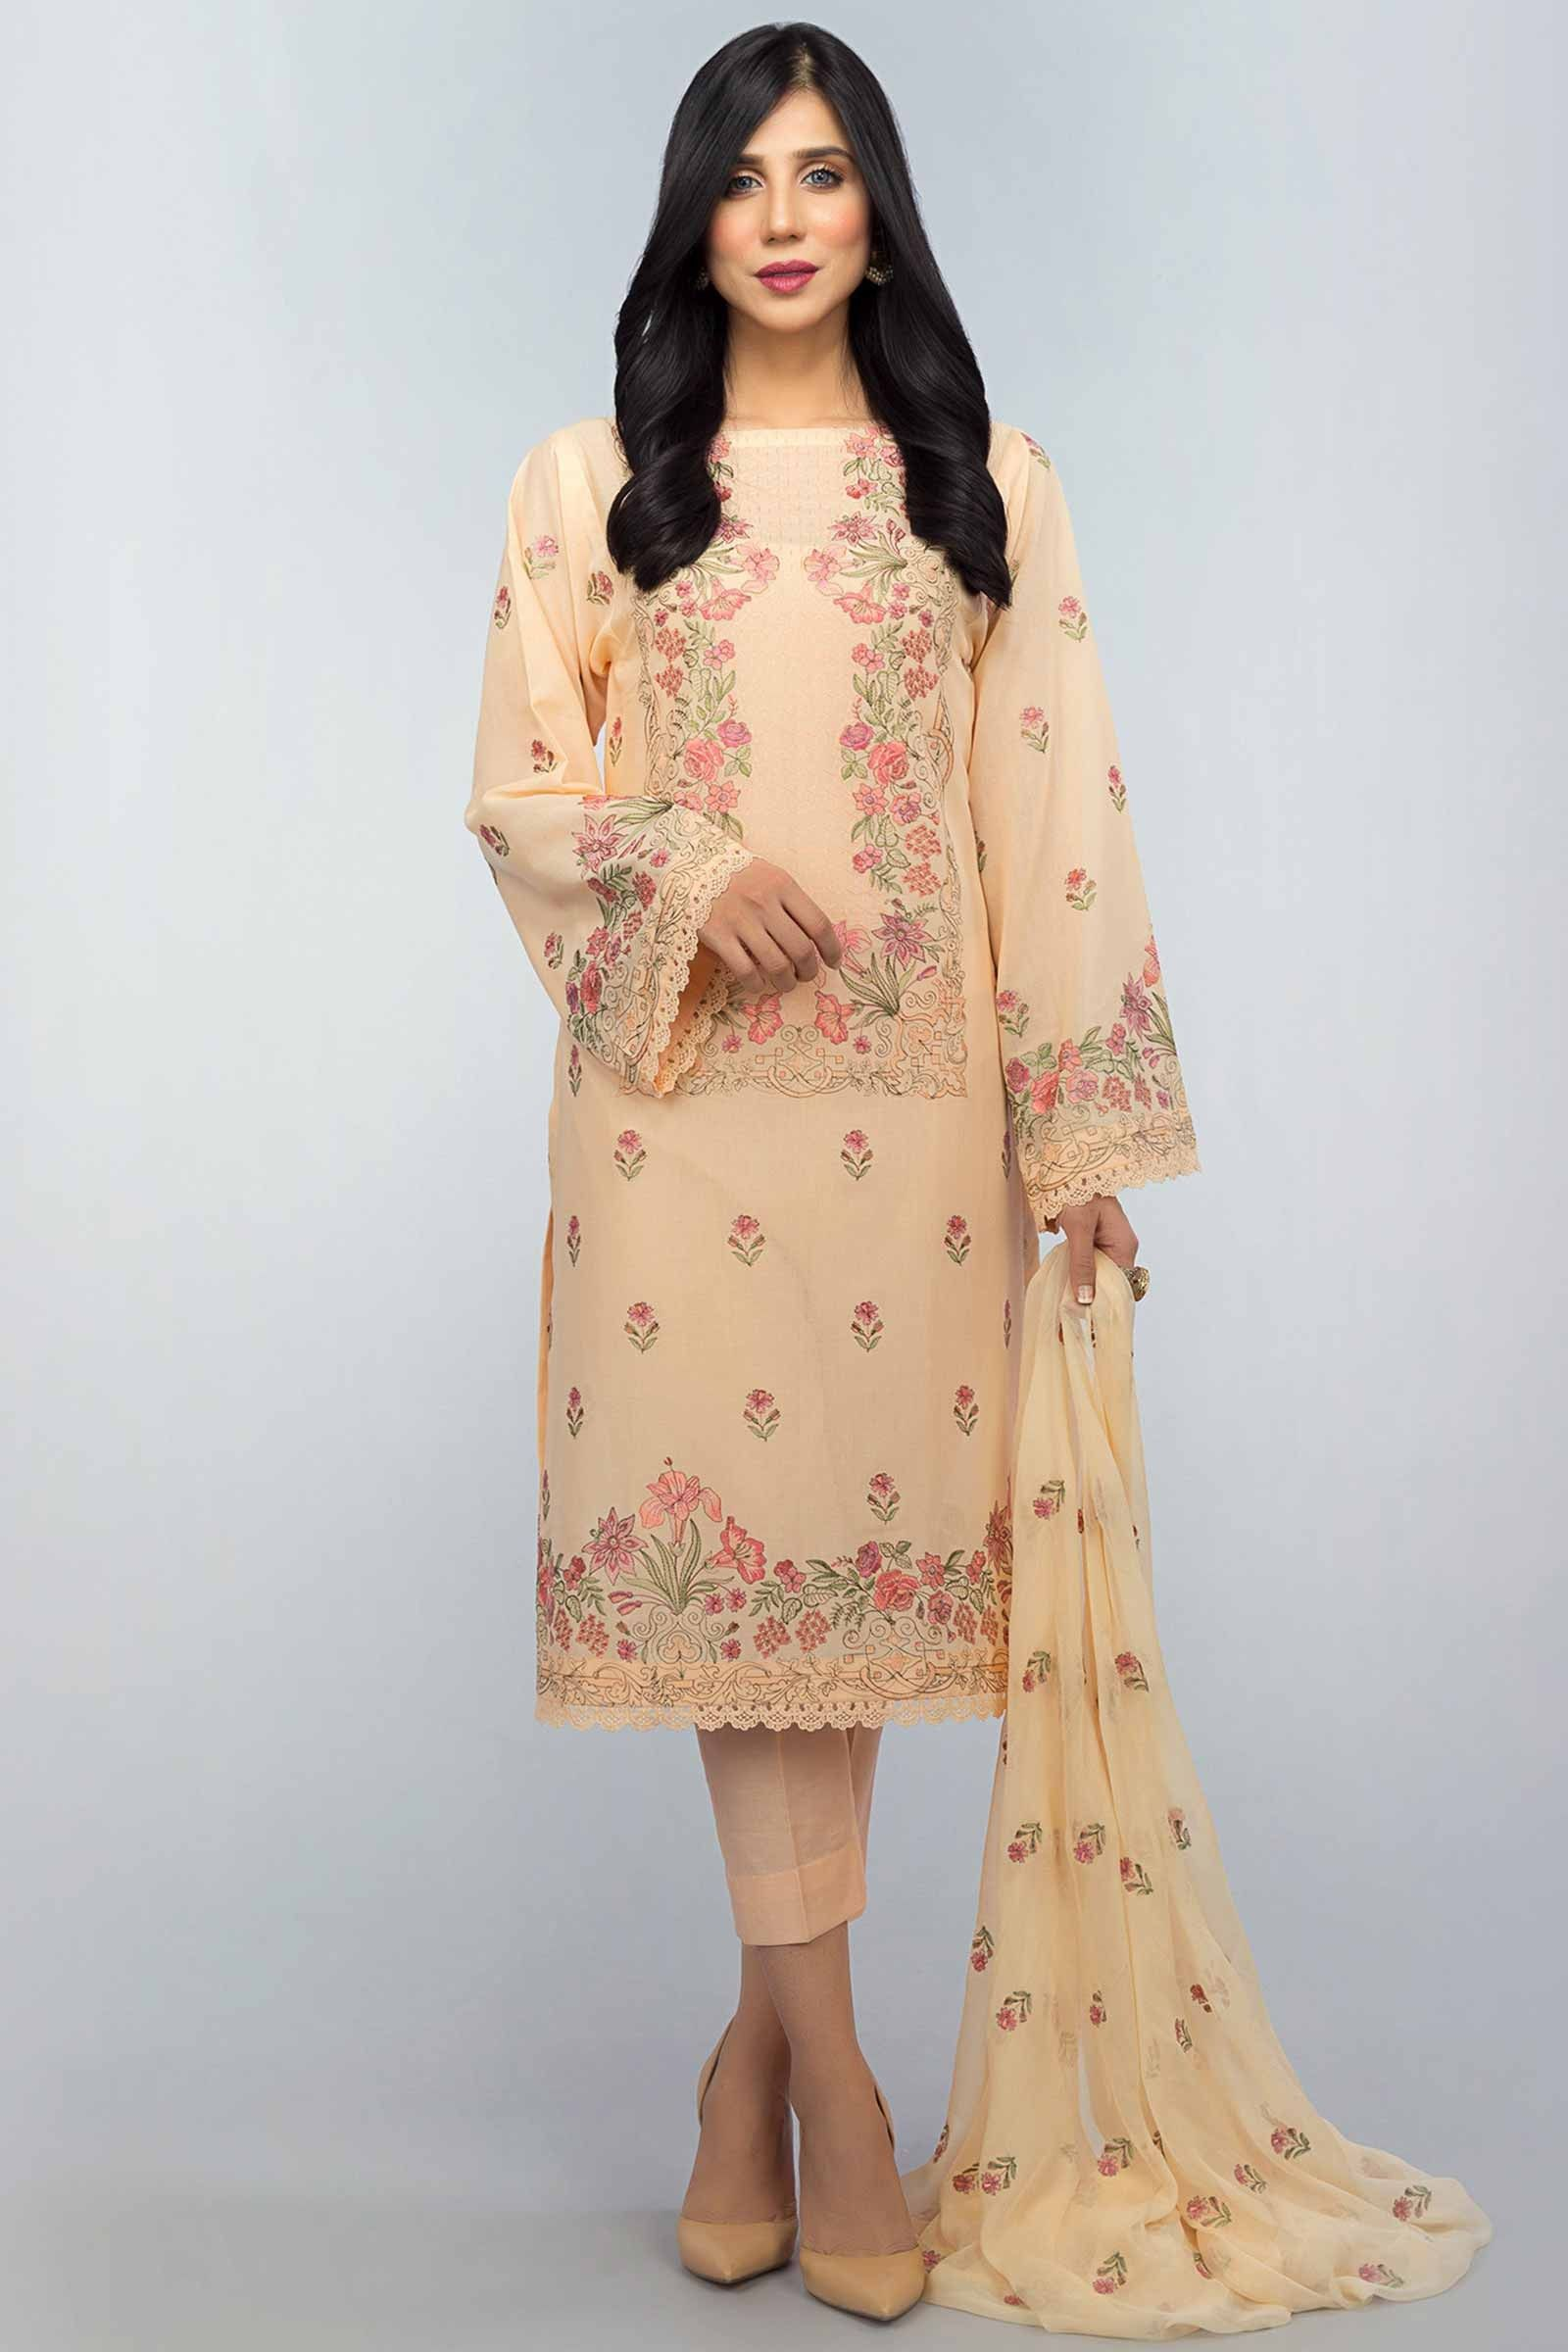 9d0976620f8 cream colored two piece unstitched Lawn dress by Bareeze summer lawn  collection  springcollection  spring  readytowear  pretwear  unstitched   online  linen ...